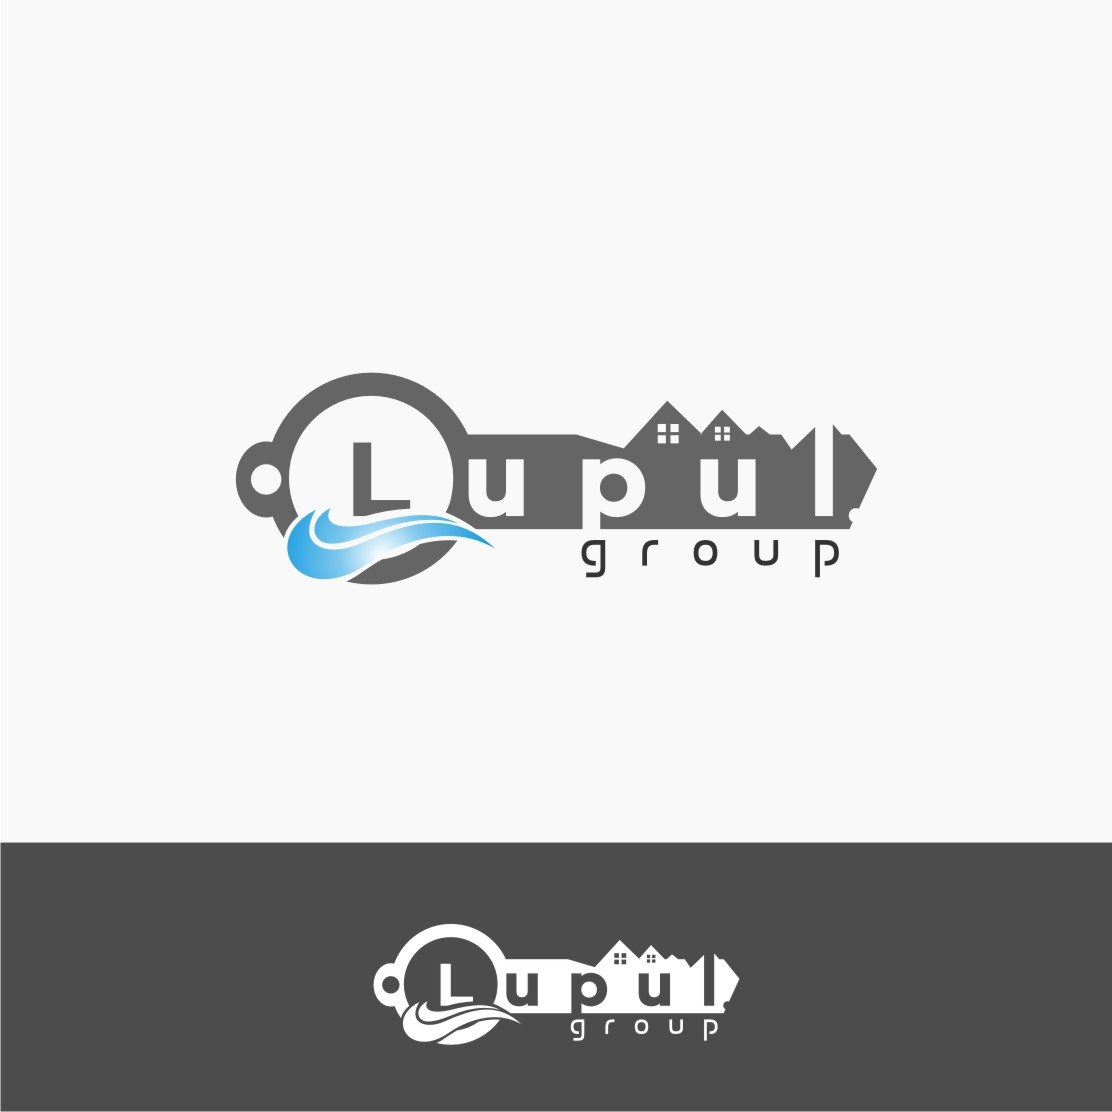 Logo Design by graphicleaf - Entry No. 200 in the Logo Design Contest Logo Design for: The Lupul Group.